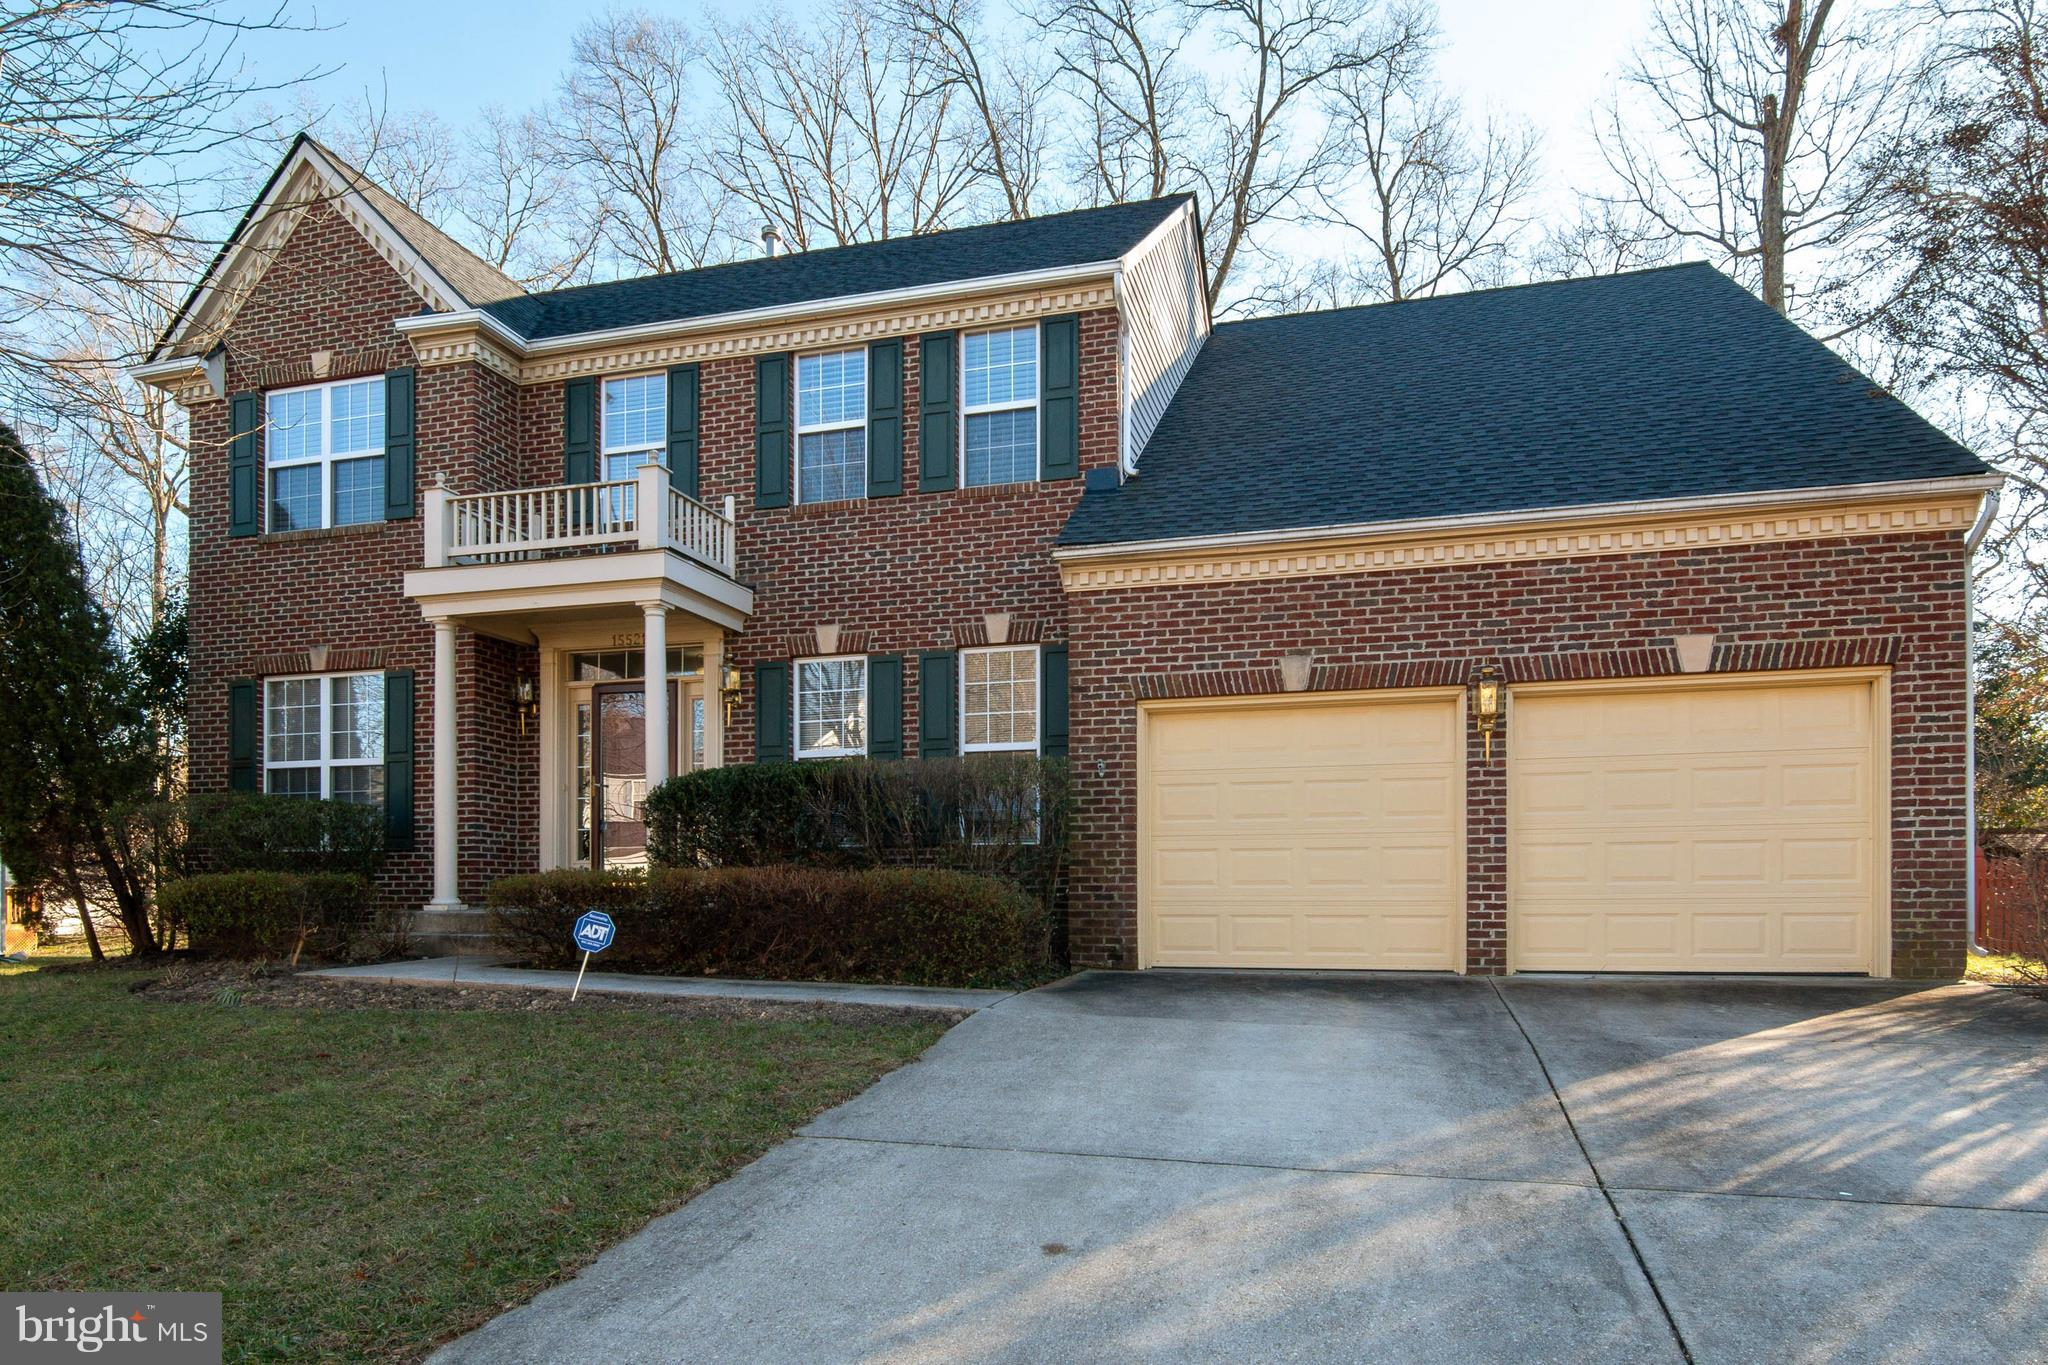 15521 ORCHARD RUN DRIVE, BOWIE, MD 20715